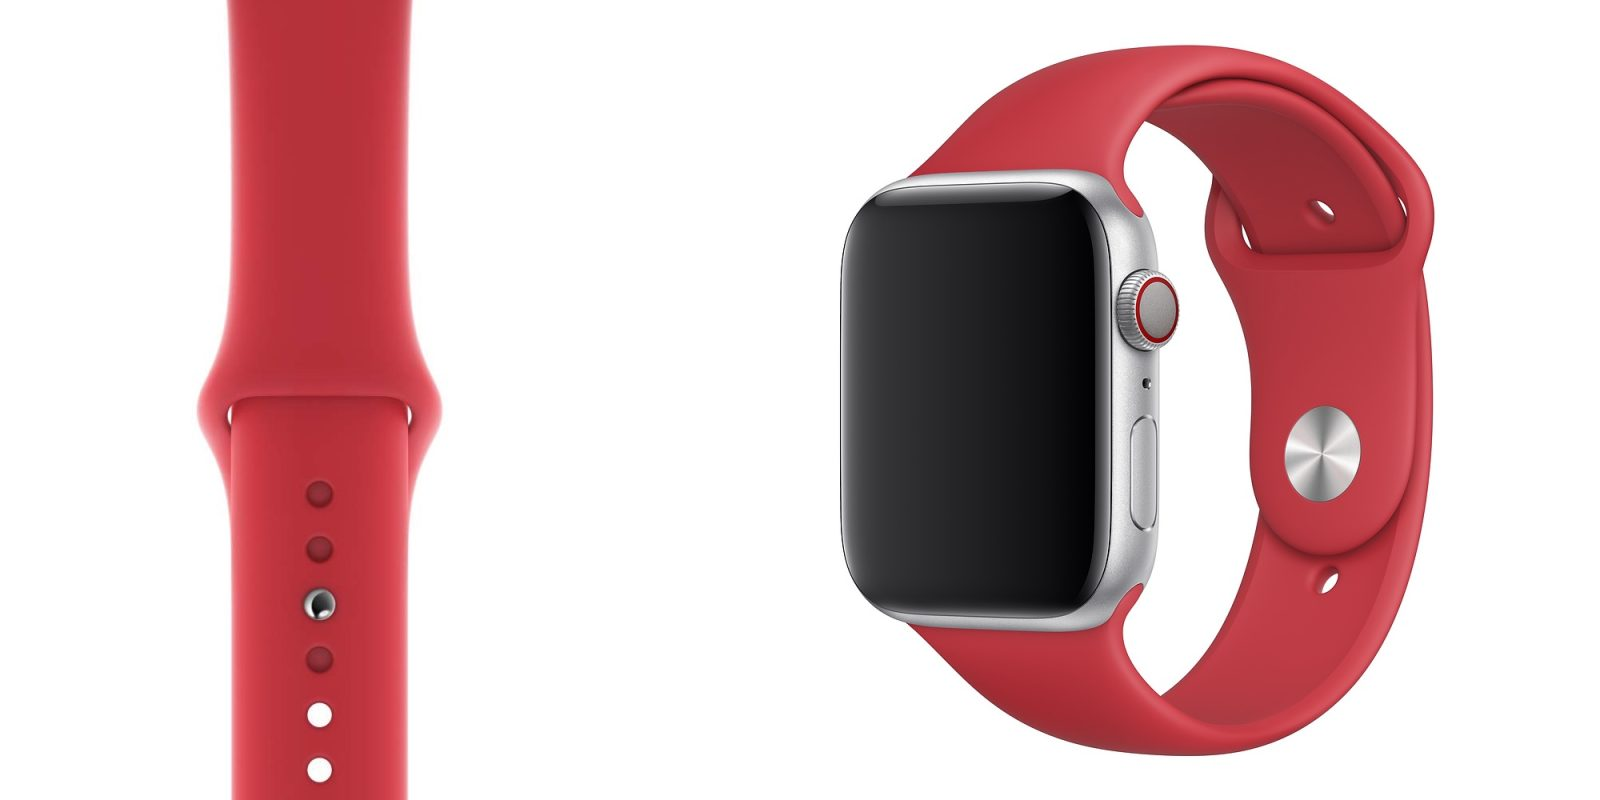 Apple's official (Product) RED Apple Watch Band is down to a new low under $36